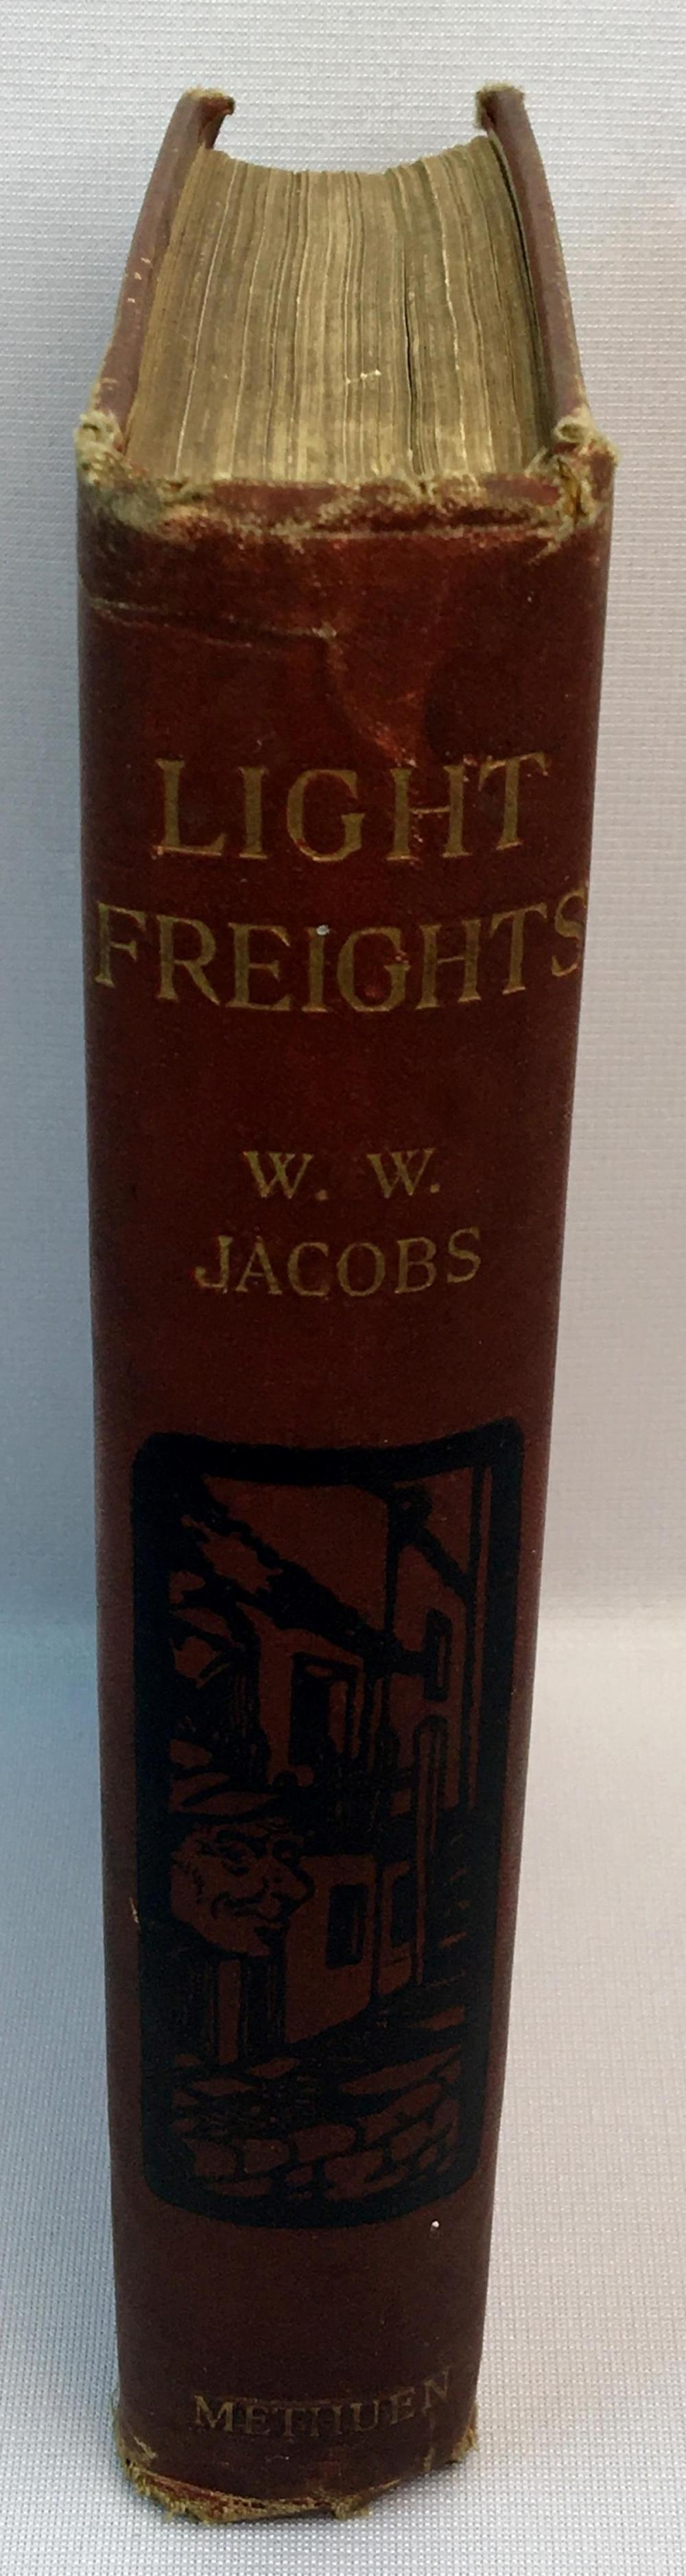 1901 Light Freights by W.W. Jacobs ILLUSTRATED